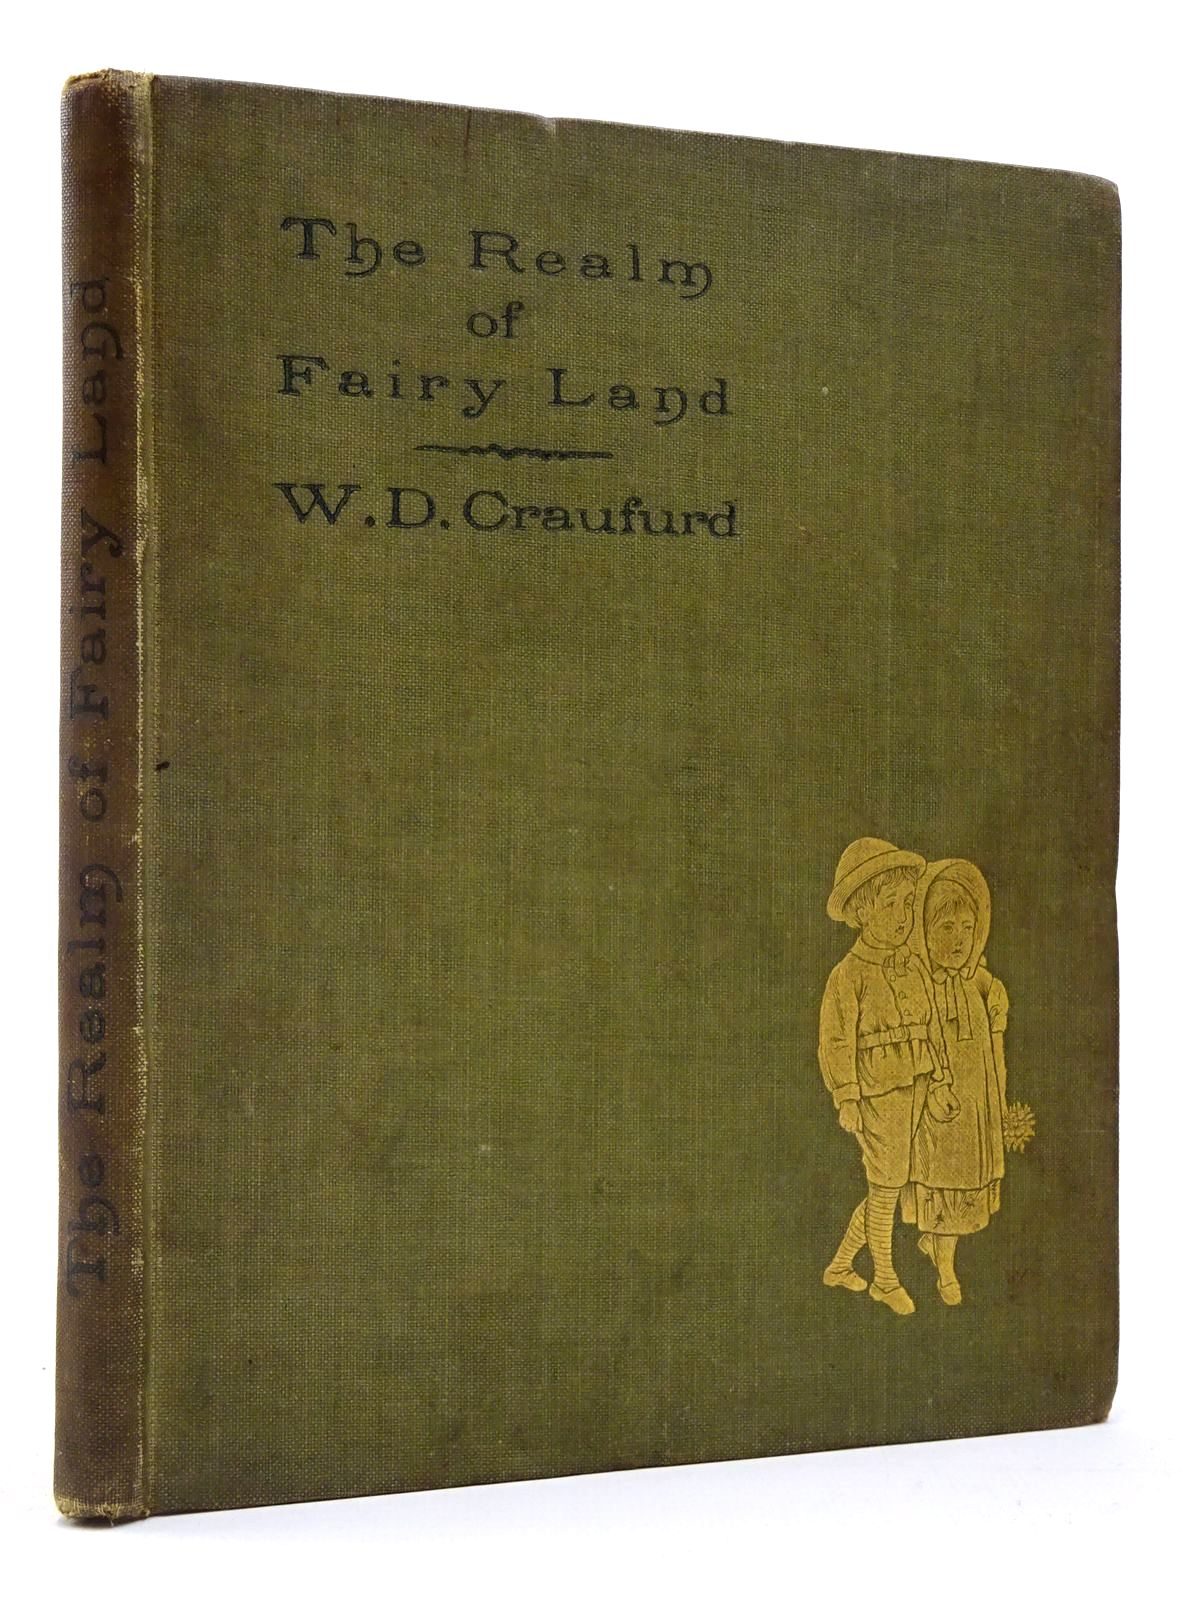 Photo of THE REALM OF FAIRYLAND written by Crufurd, W.D. illustrated by Calvert, Edith published by Elkin Mathews (STOCK CODE: 2130041)  for sale by Stella & Rose's Books